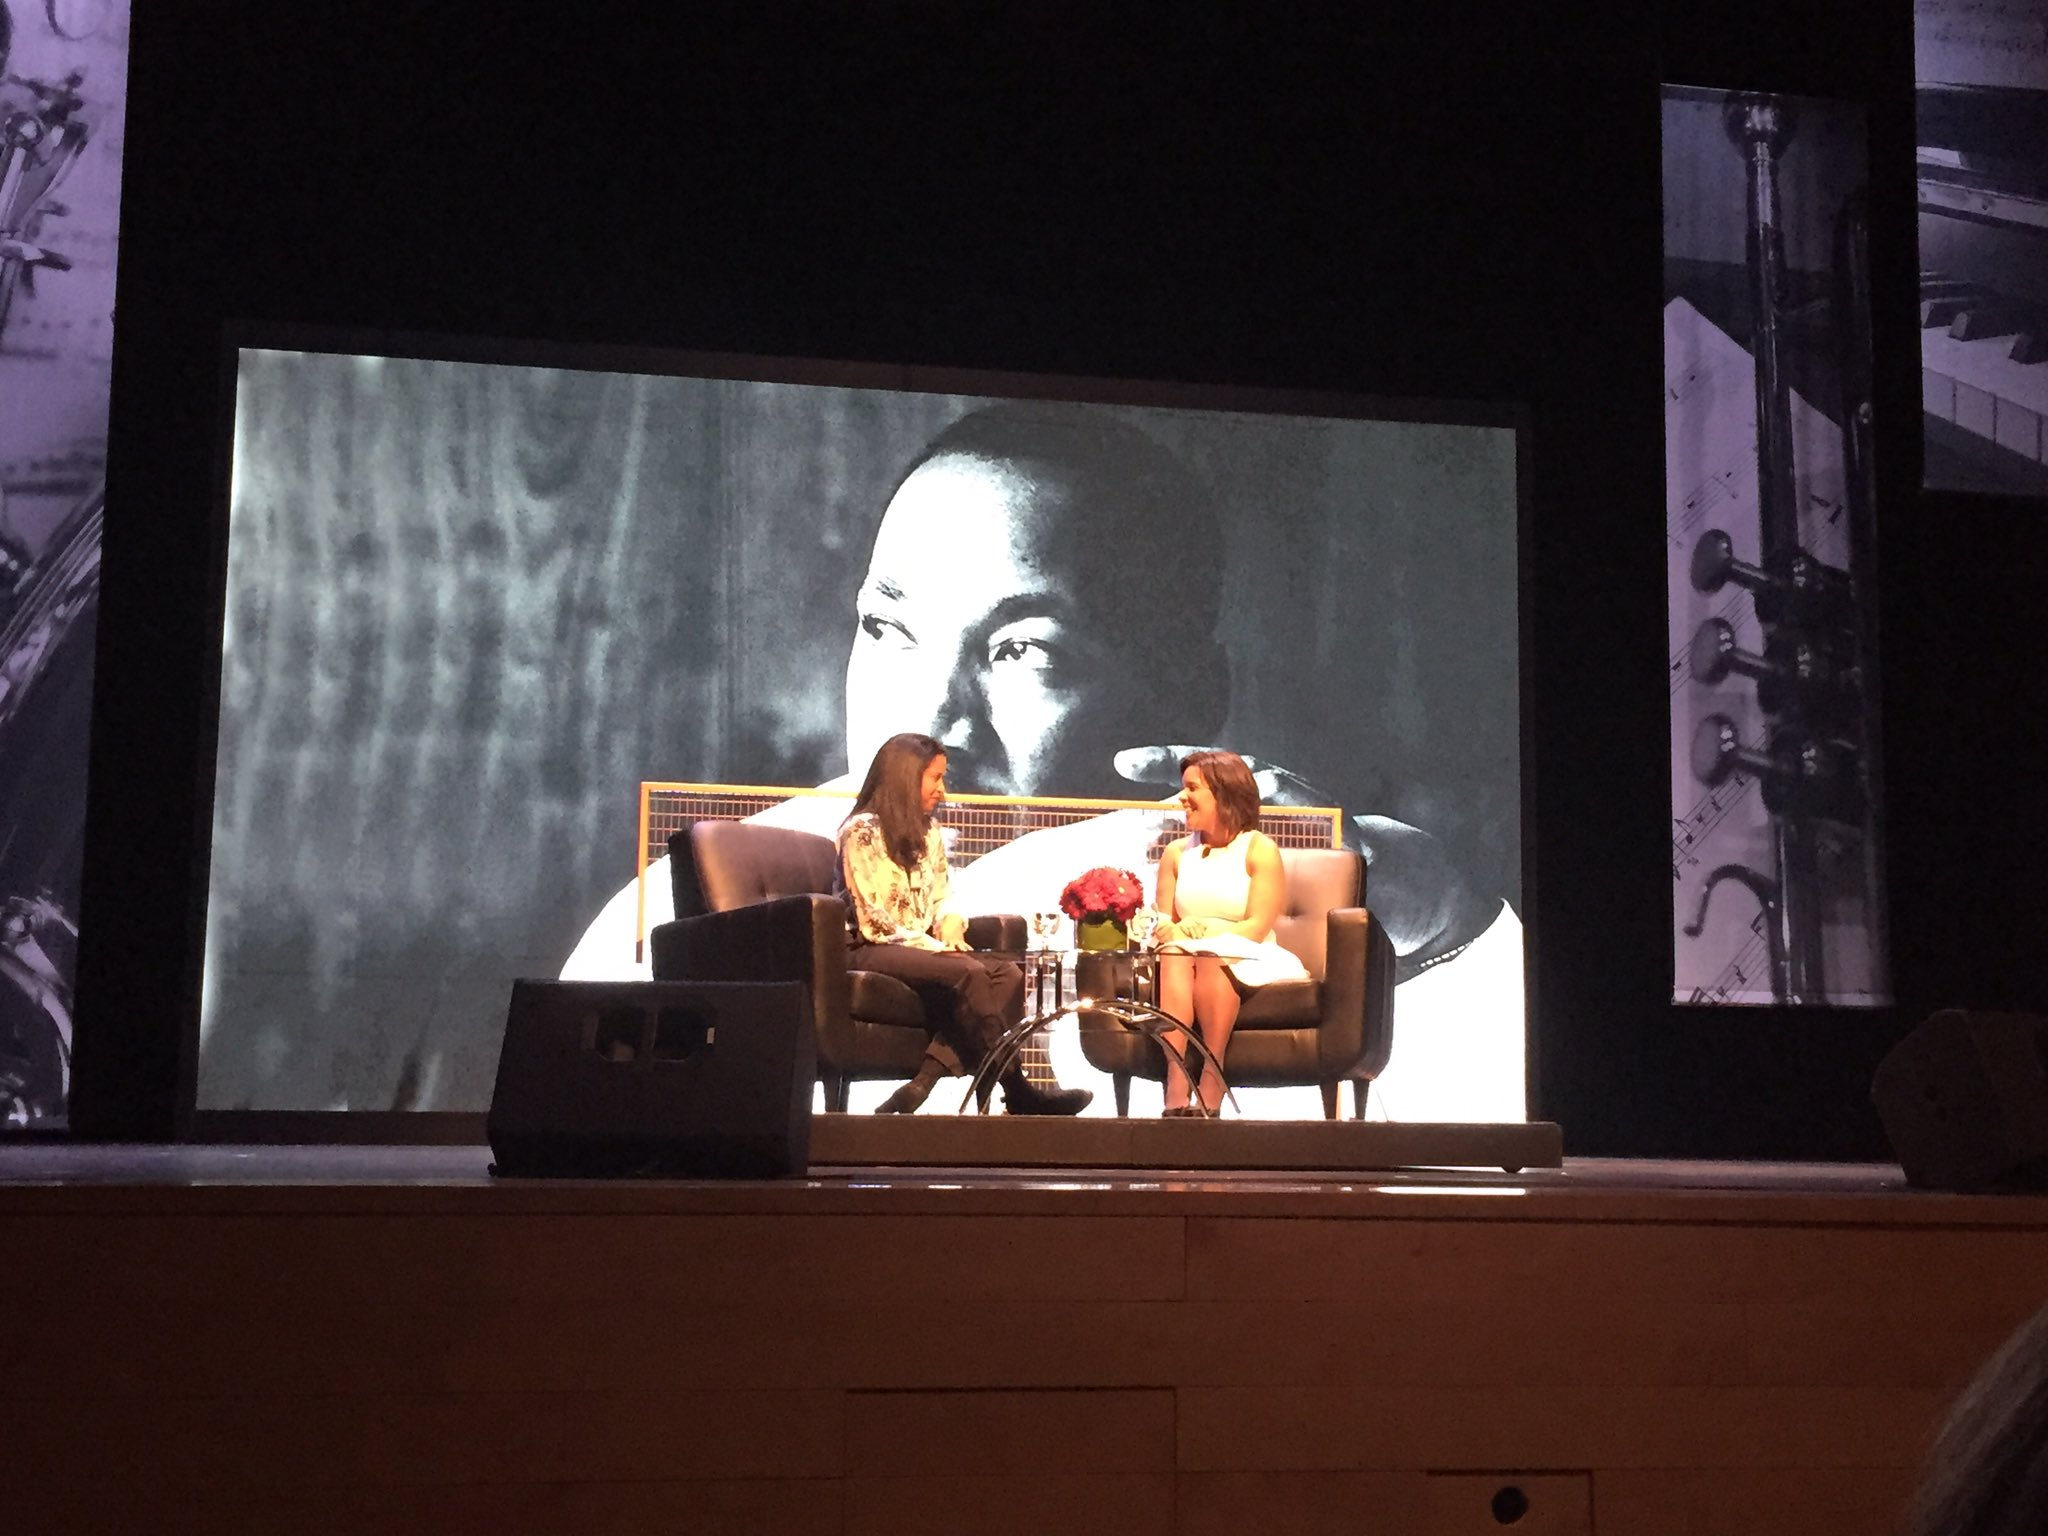 We are now hearing from Renee Elise Goldsberry from #Hamilton #MLKDAY @Northeastern https://t.co/MpK1fIruMS